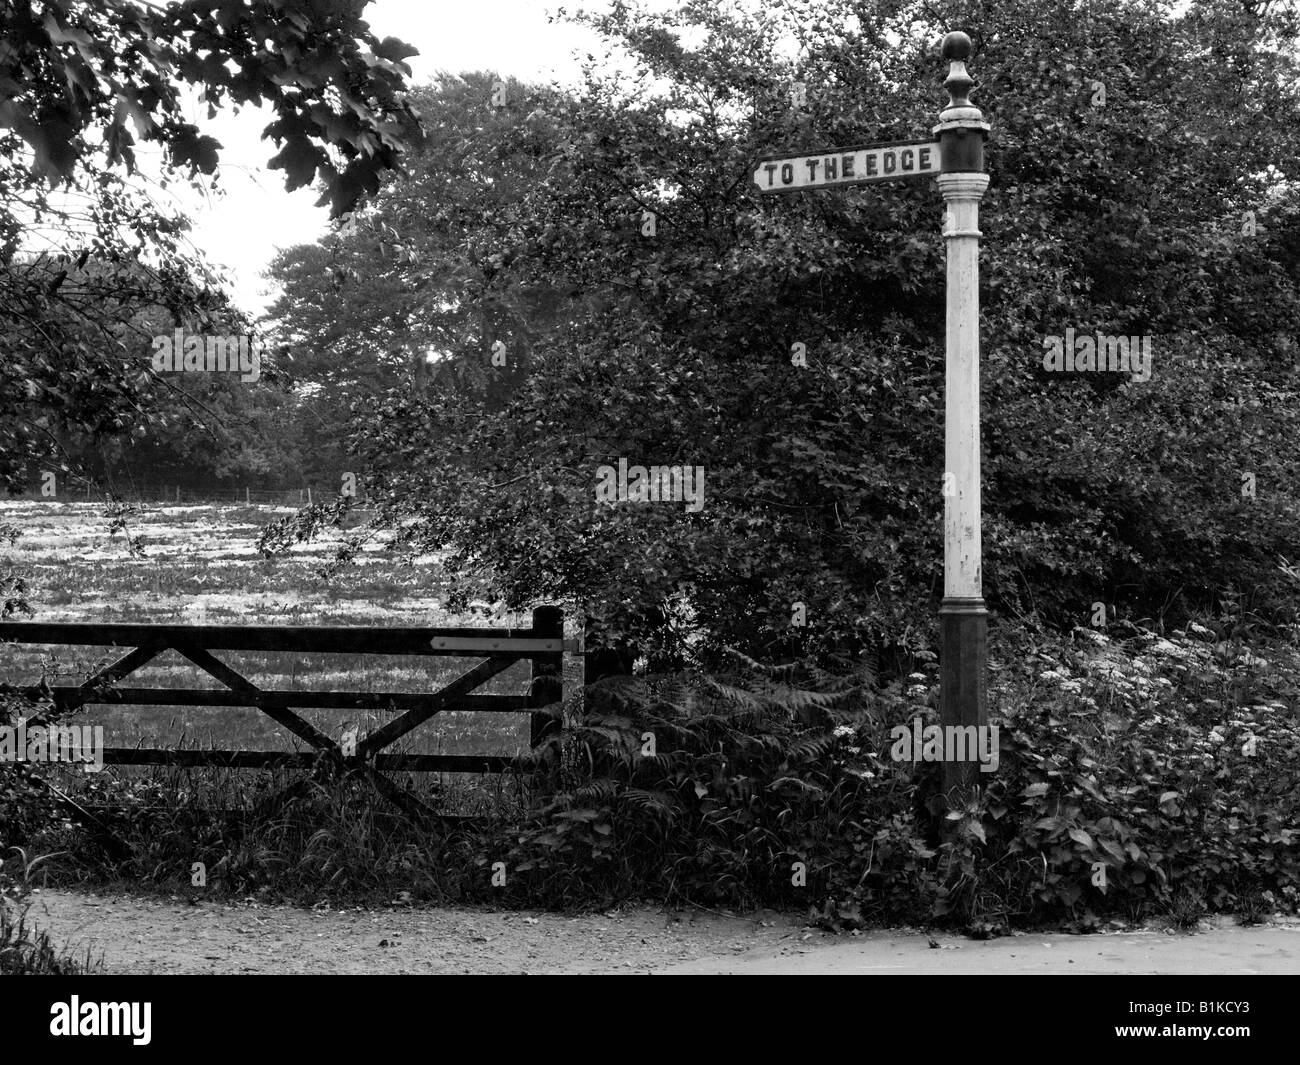 Old iron sign post saying TO THE EDGE. At Alderley Edge, in Cheshire, near Manchester. Black and white photograph. - Stock Image